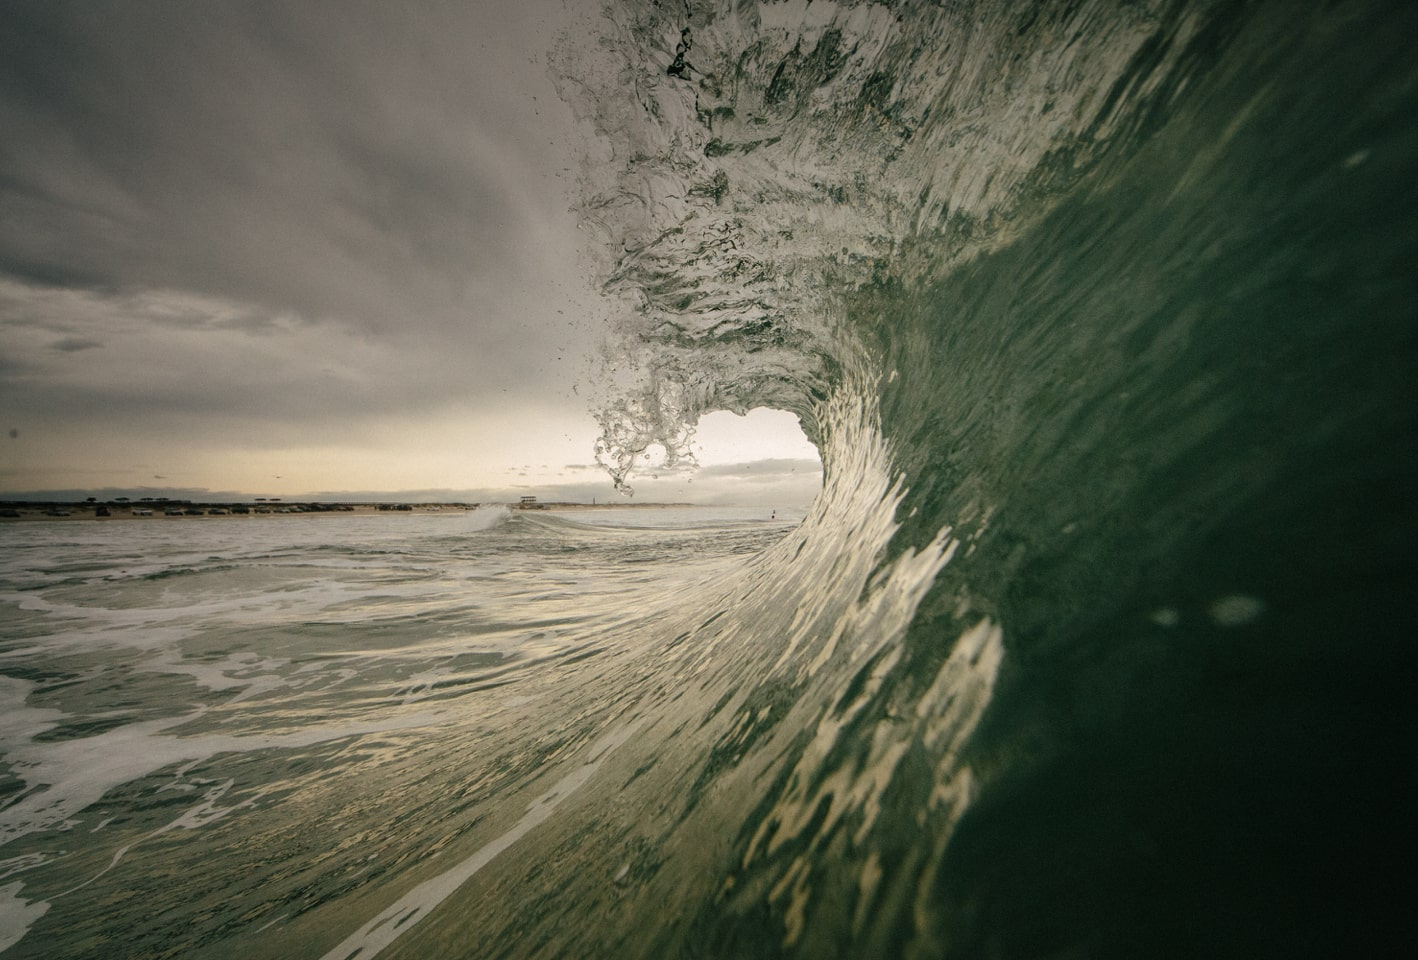 surf wave photograph